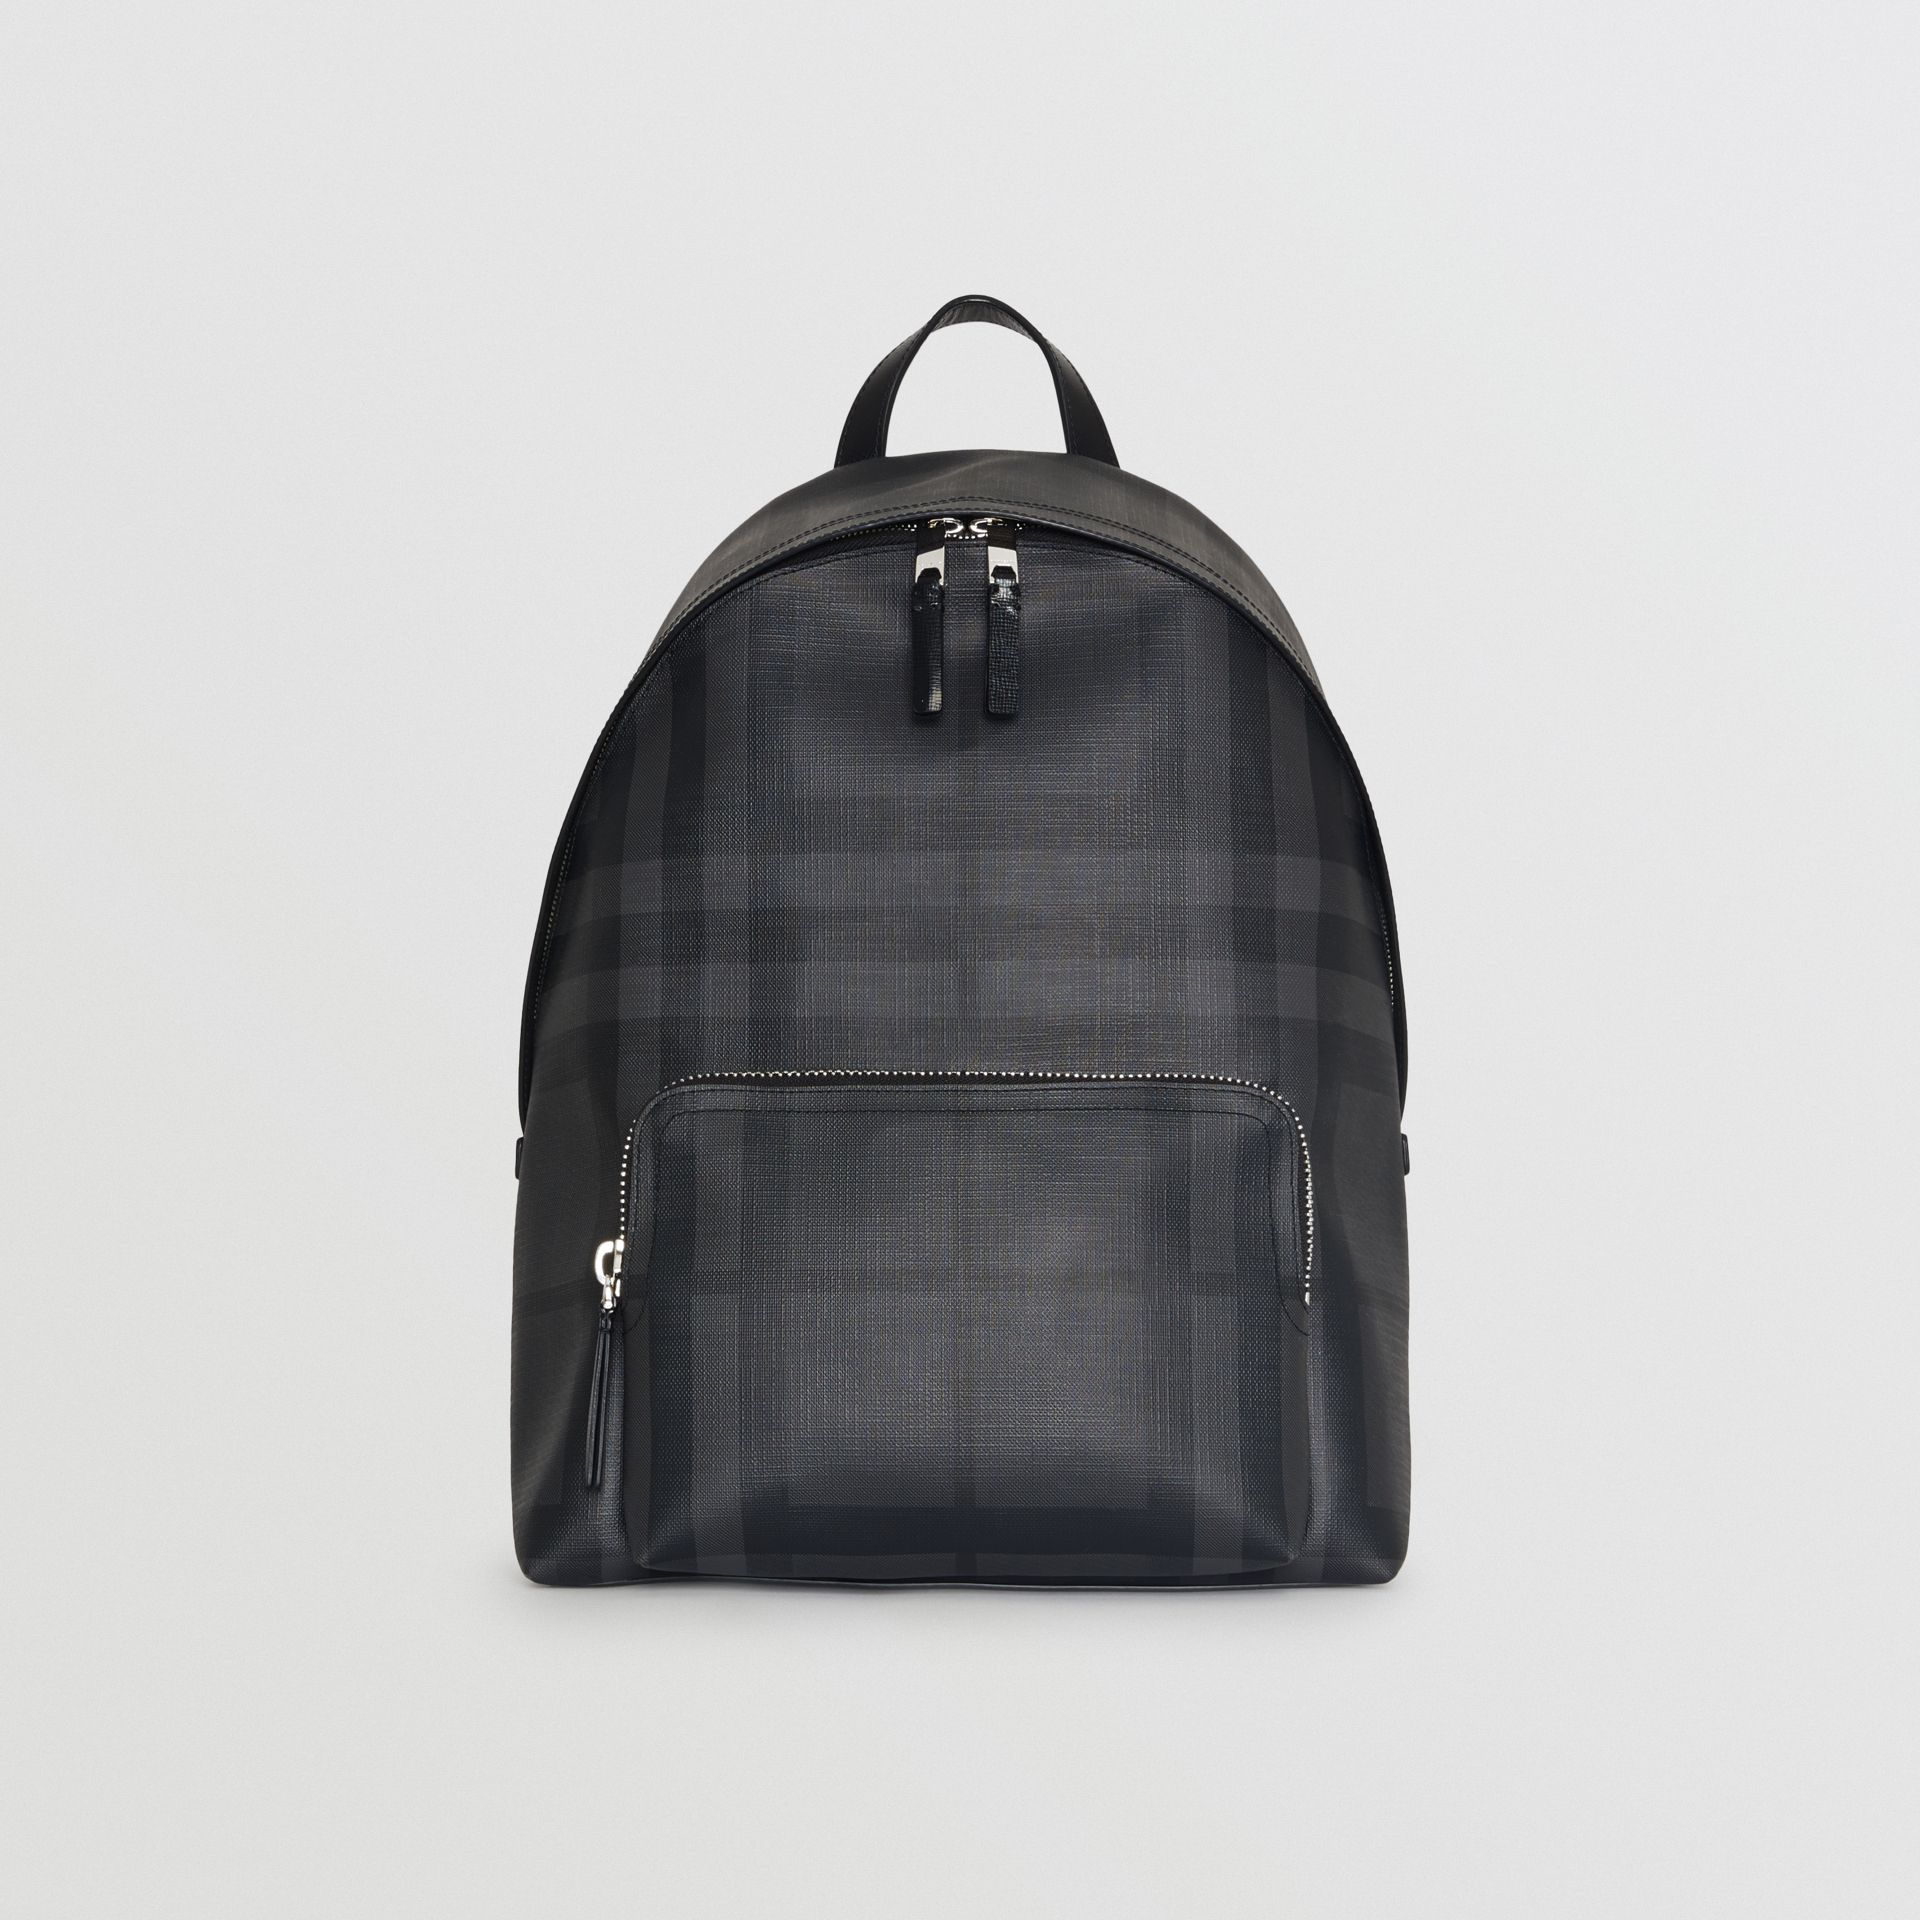 Sac à dos à motif London check avec éléments en cuir (Anthracite/noir) - Homme | Burberry Canada - photo de la galerie 4